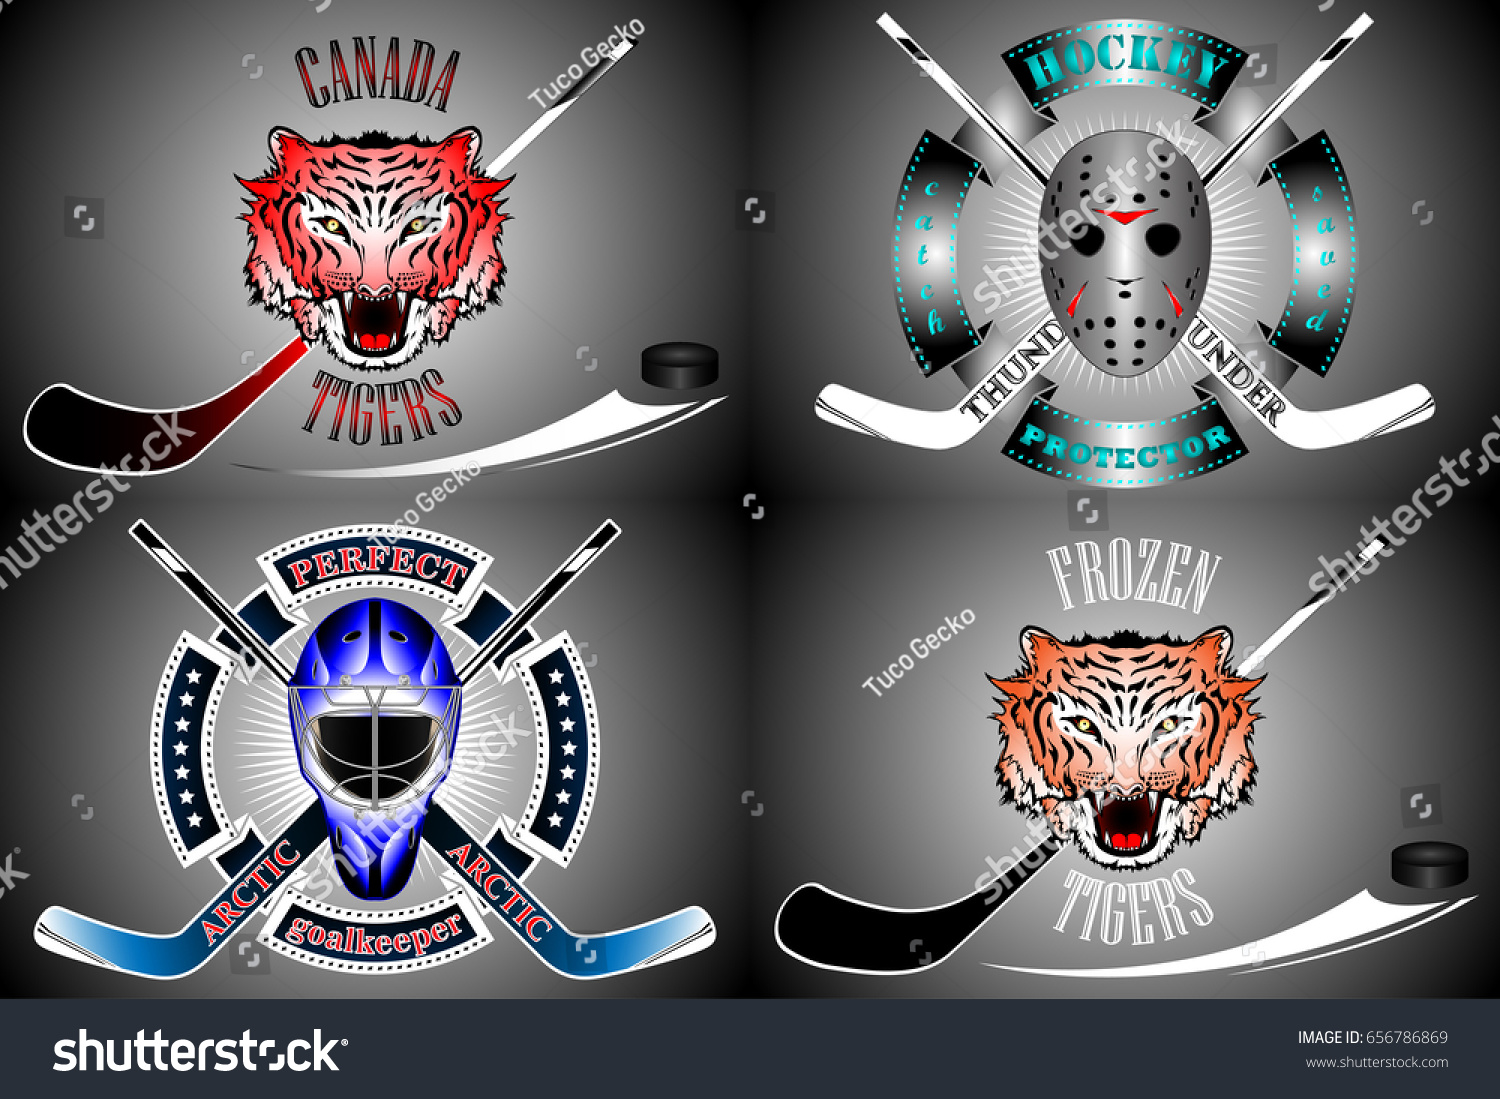 Hockey Logos New Hockey Logos Stock Vector Royalty Free 656786869 Shutterstock